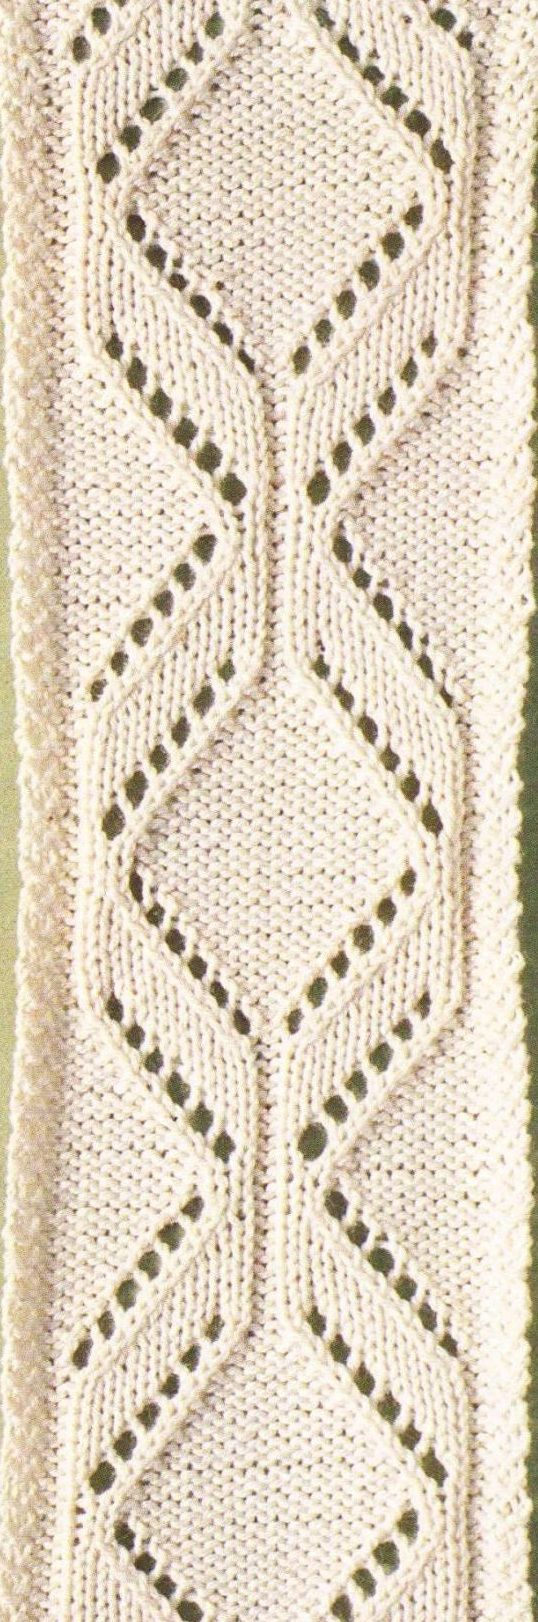 1084 best images about Knit stitches - lace on Pinterest Cable, Lace knitti...